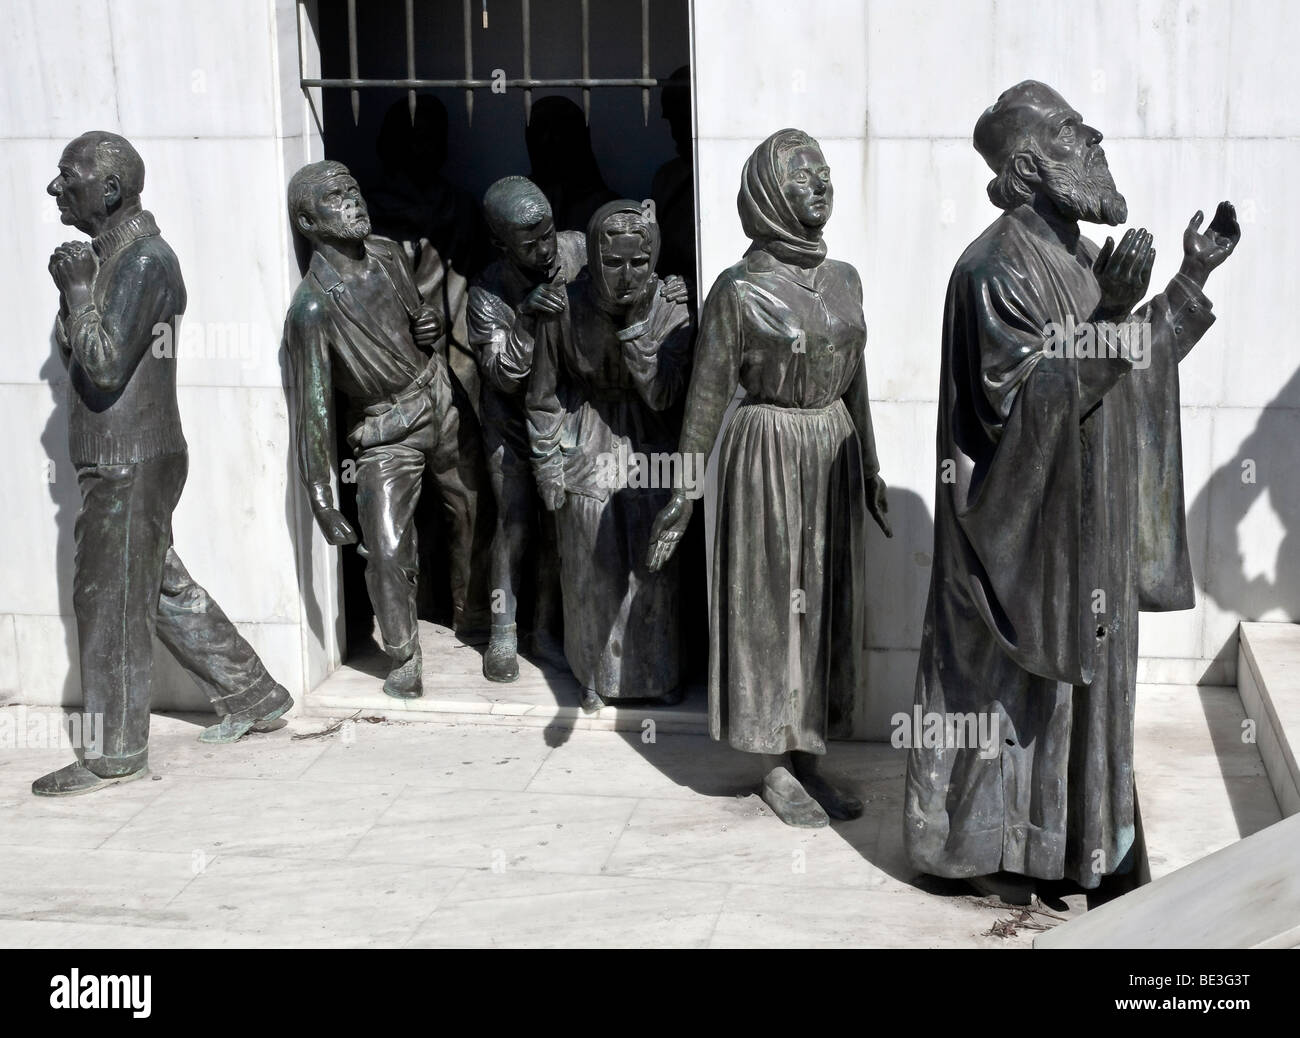 Freedom monument in the south of Nicosia, Lefkosia, Lefkosa, capital of Cyprus, Southern Cyprus, Europe - Stock Image